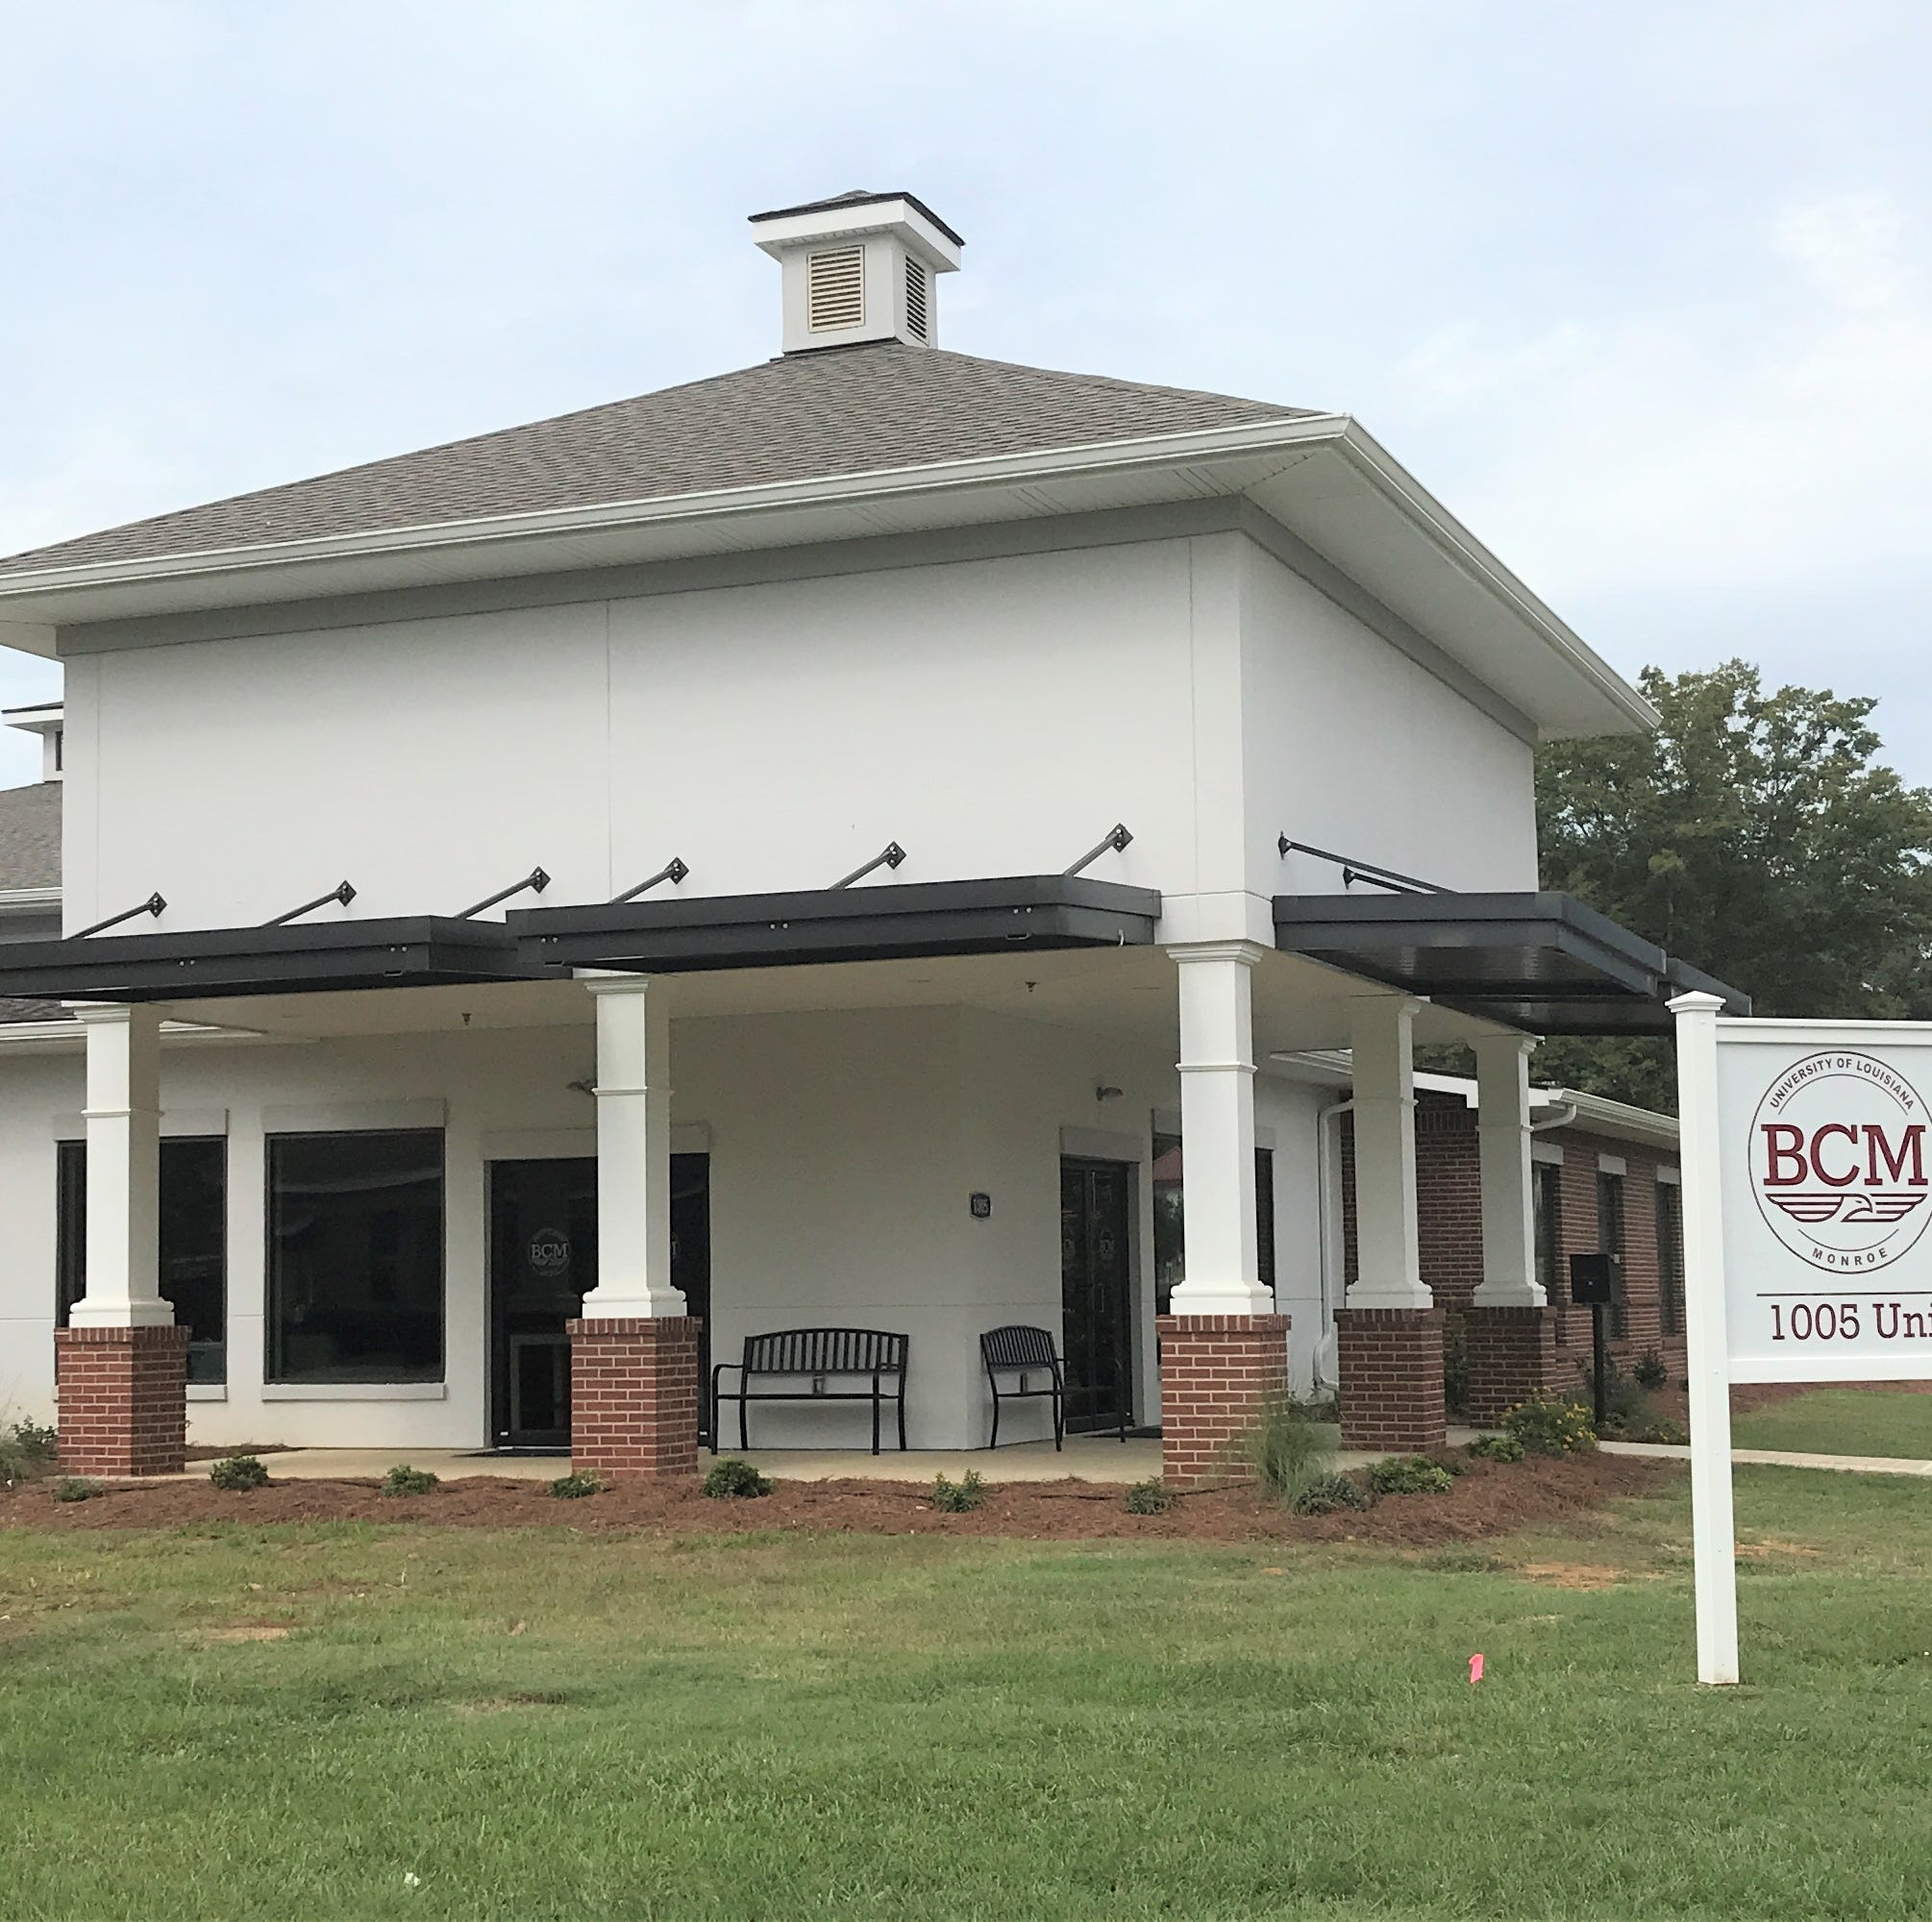 Baptist Collegiate Ministry moves into new home at ULM